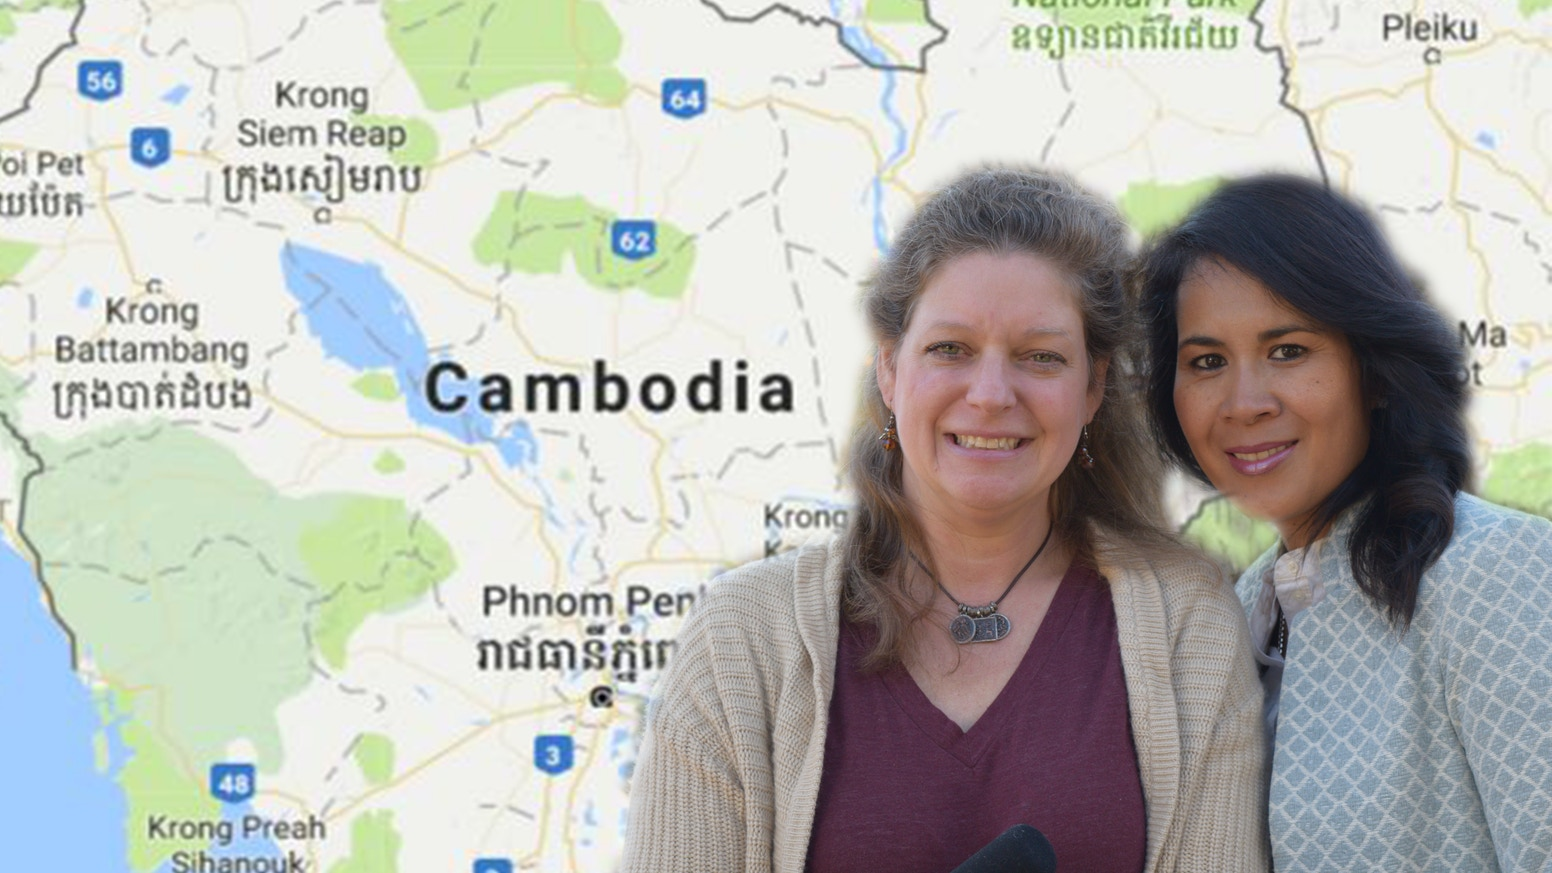 Facing a Cambodian Past by Lindsay Stone » My flight is leaving at